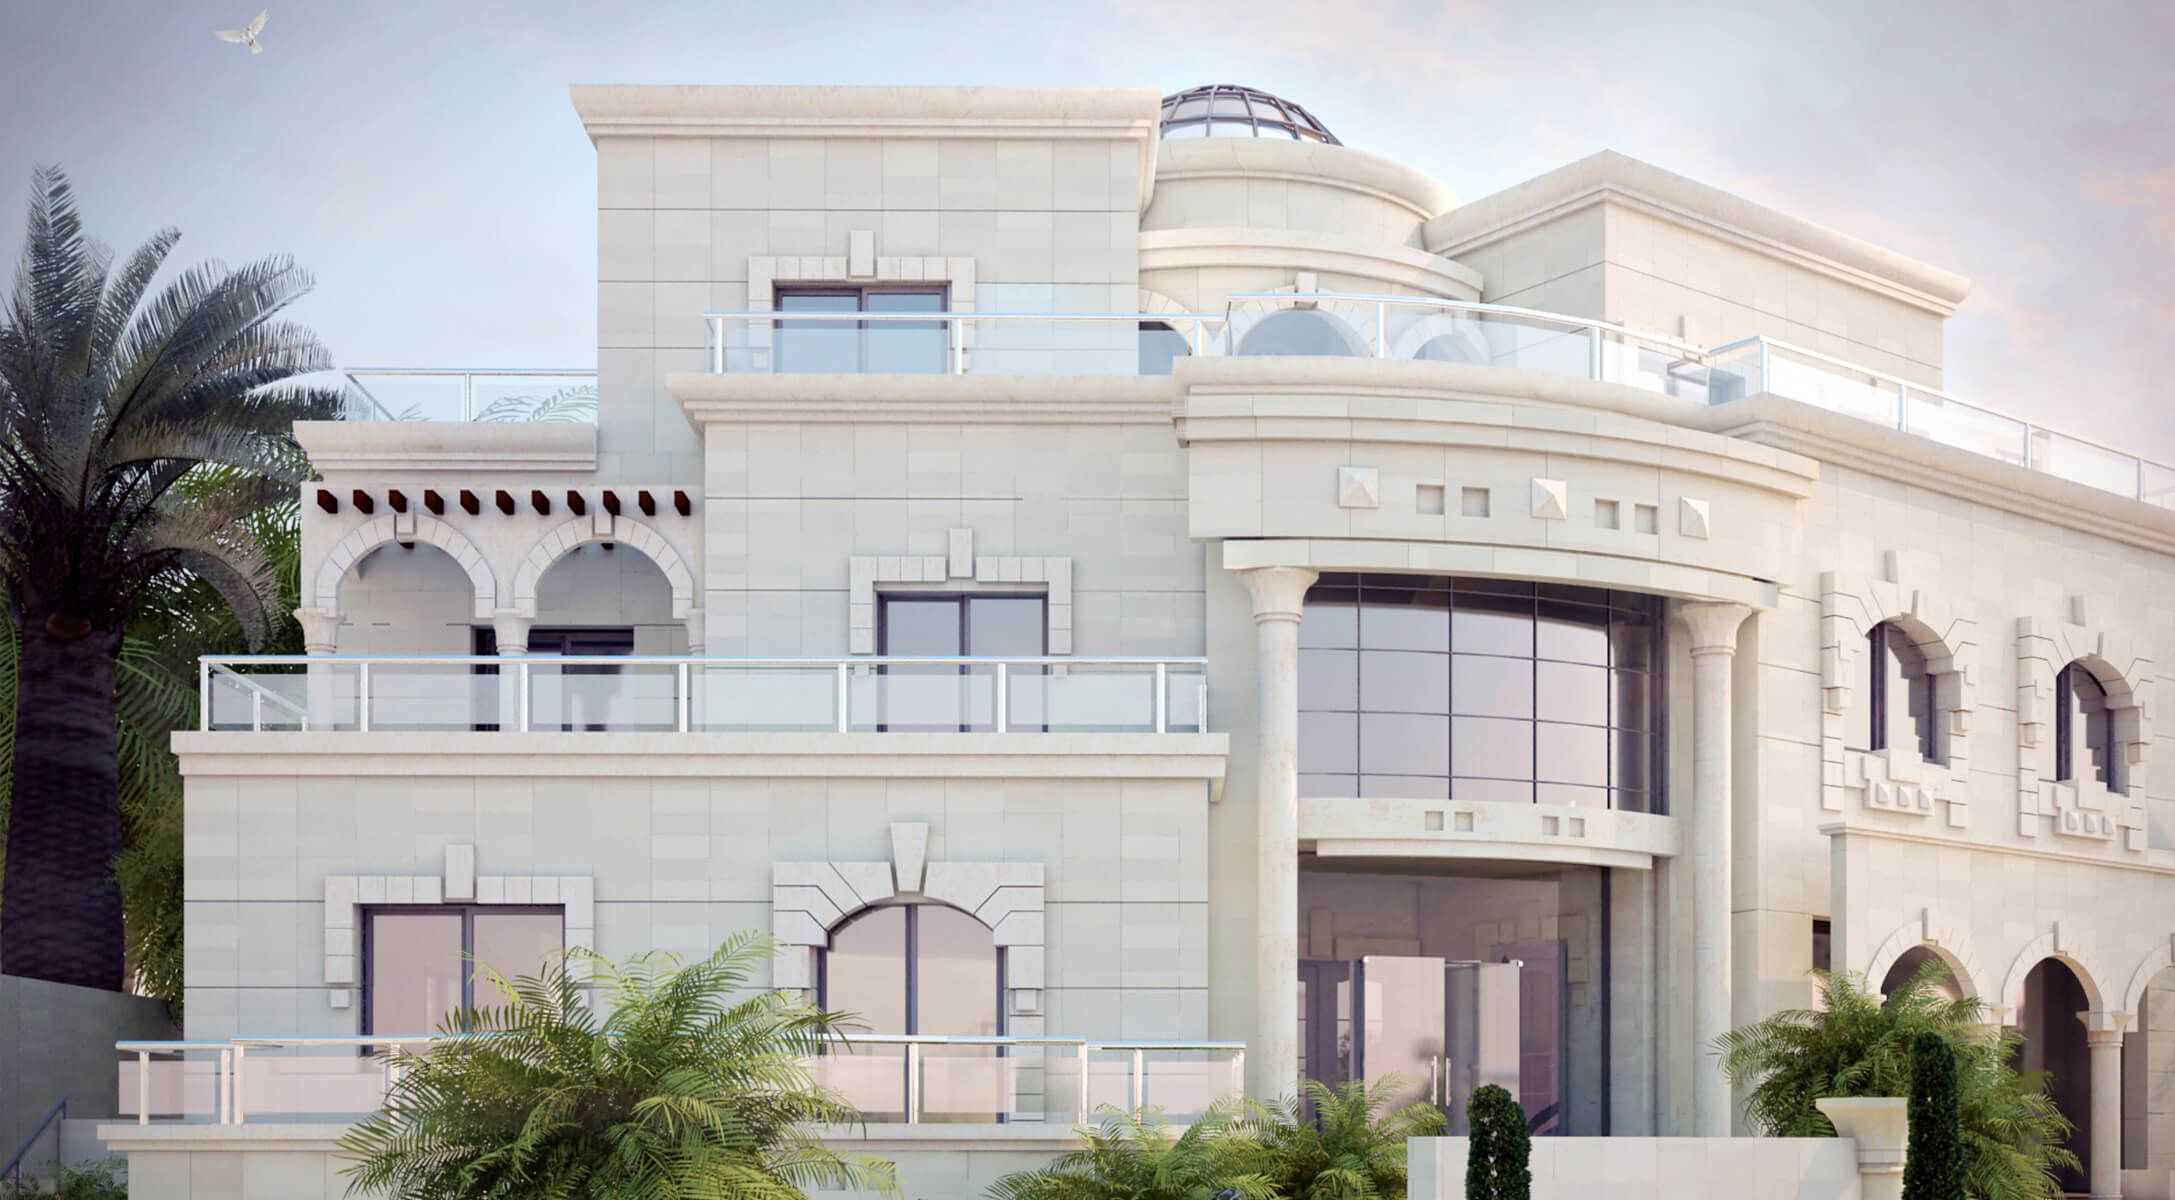 abu-karma villa   Future Archs   view full size image on our website